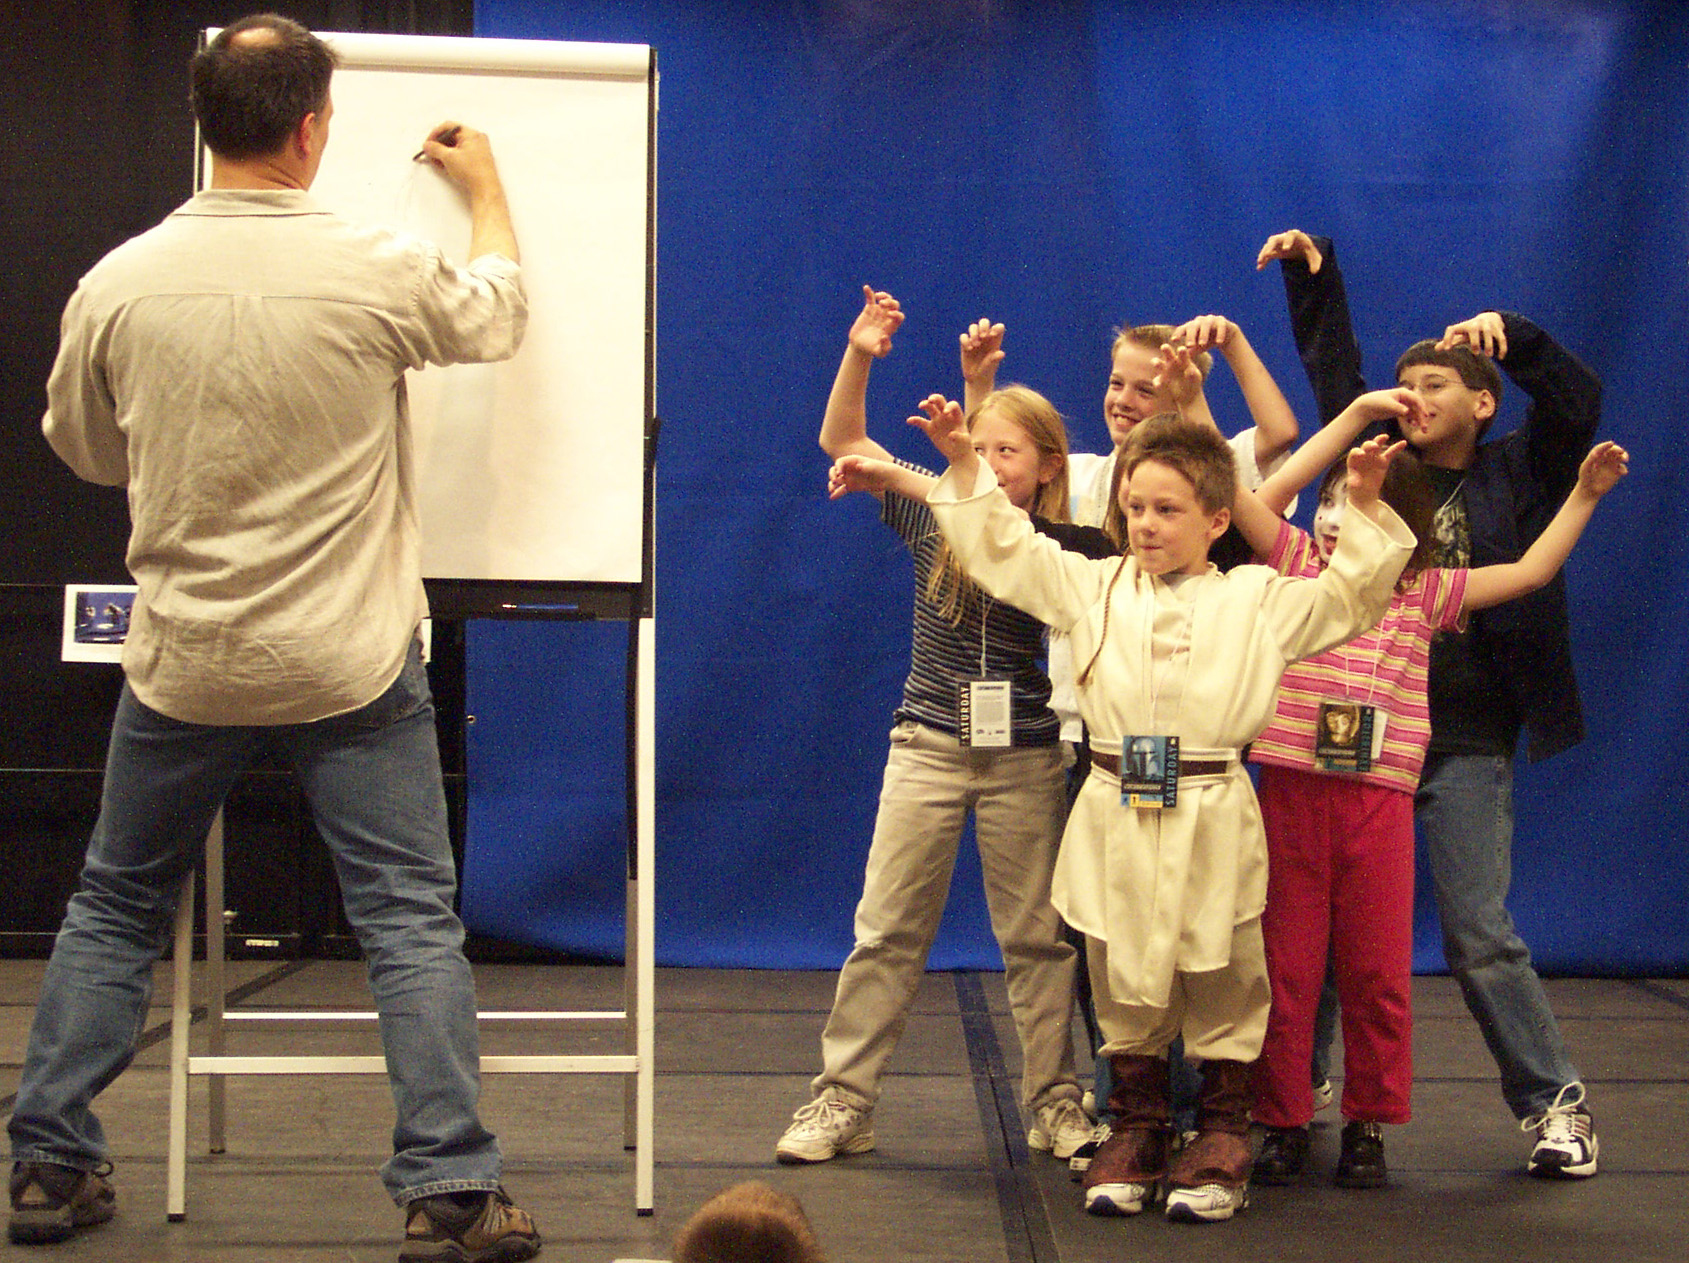 "Iain McCaig, concept artist for the Star Wars prequels, led eager kids in his class, ""A Day in the Star Wars Art Department."" McCaig taught young artists how to draw Star Wars creatures in the Star Wars Family Room during Celebration II. The Family Room featured drawing classes, face painting, letters to Yoda, craft projects, costume contests, and a stage for acting out favorite scenes from the films. Since Celebration II, the Star Wars Family Room has grown in programming scope and size. It's an essential part of all Celebrations. Photo by Dennis VonGalle."